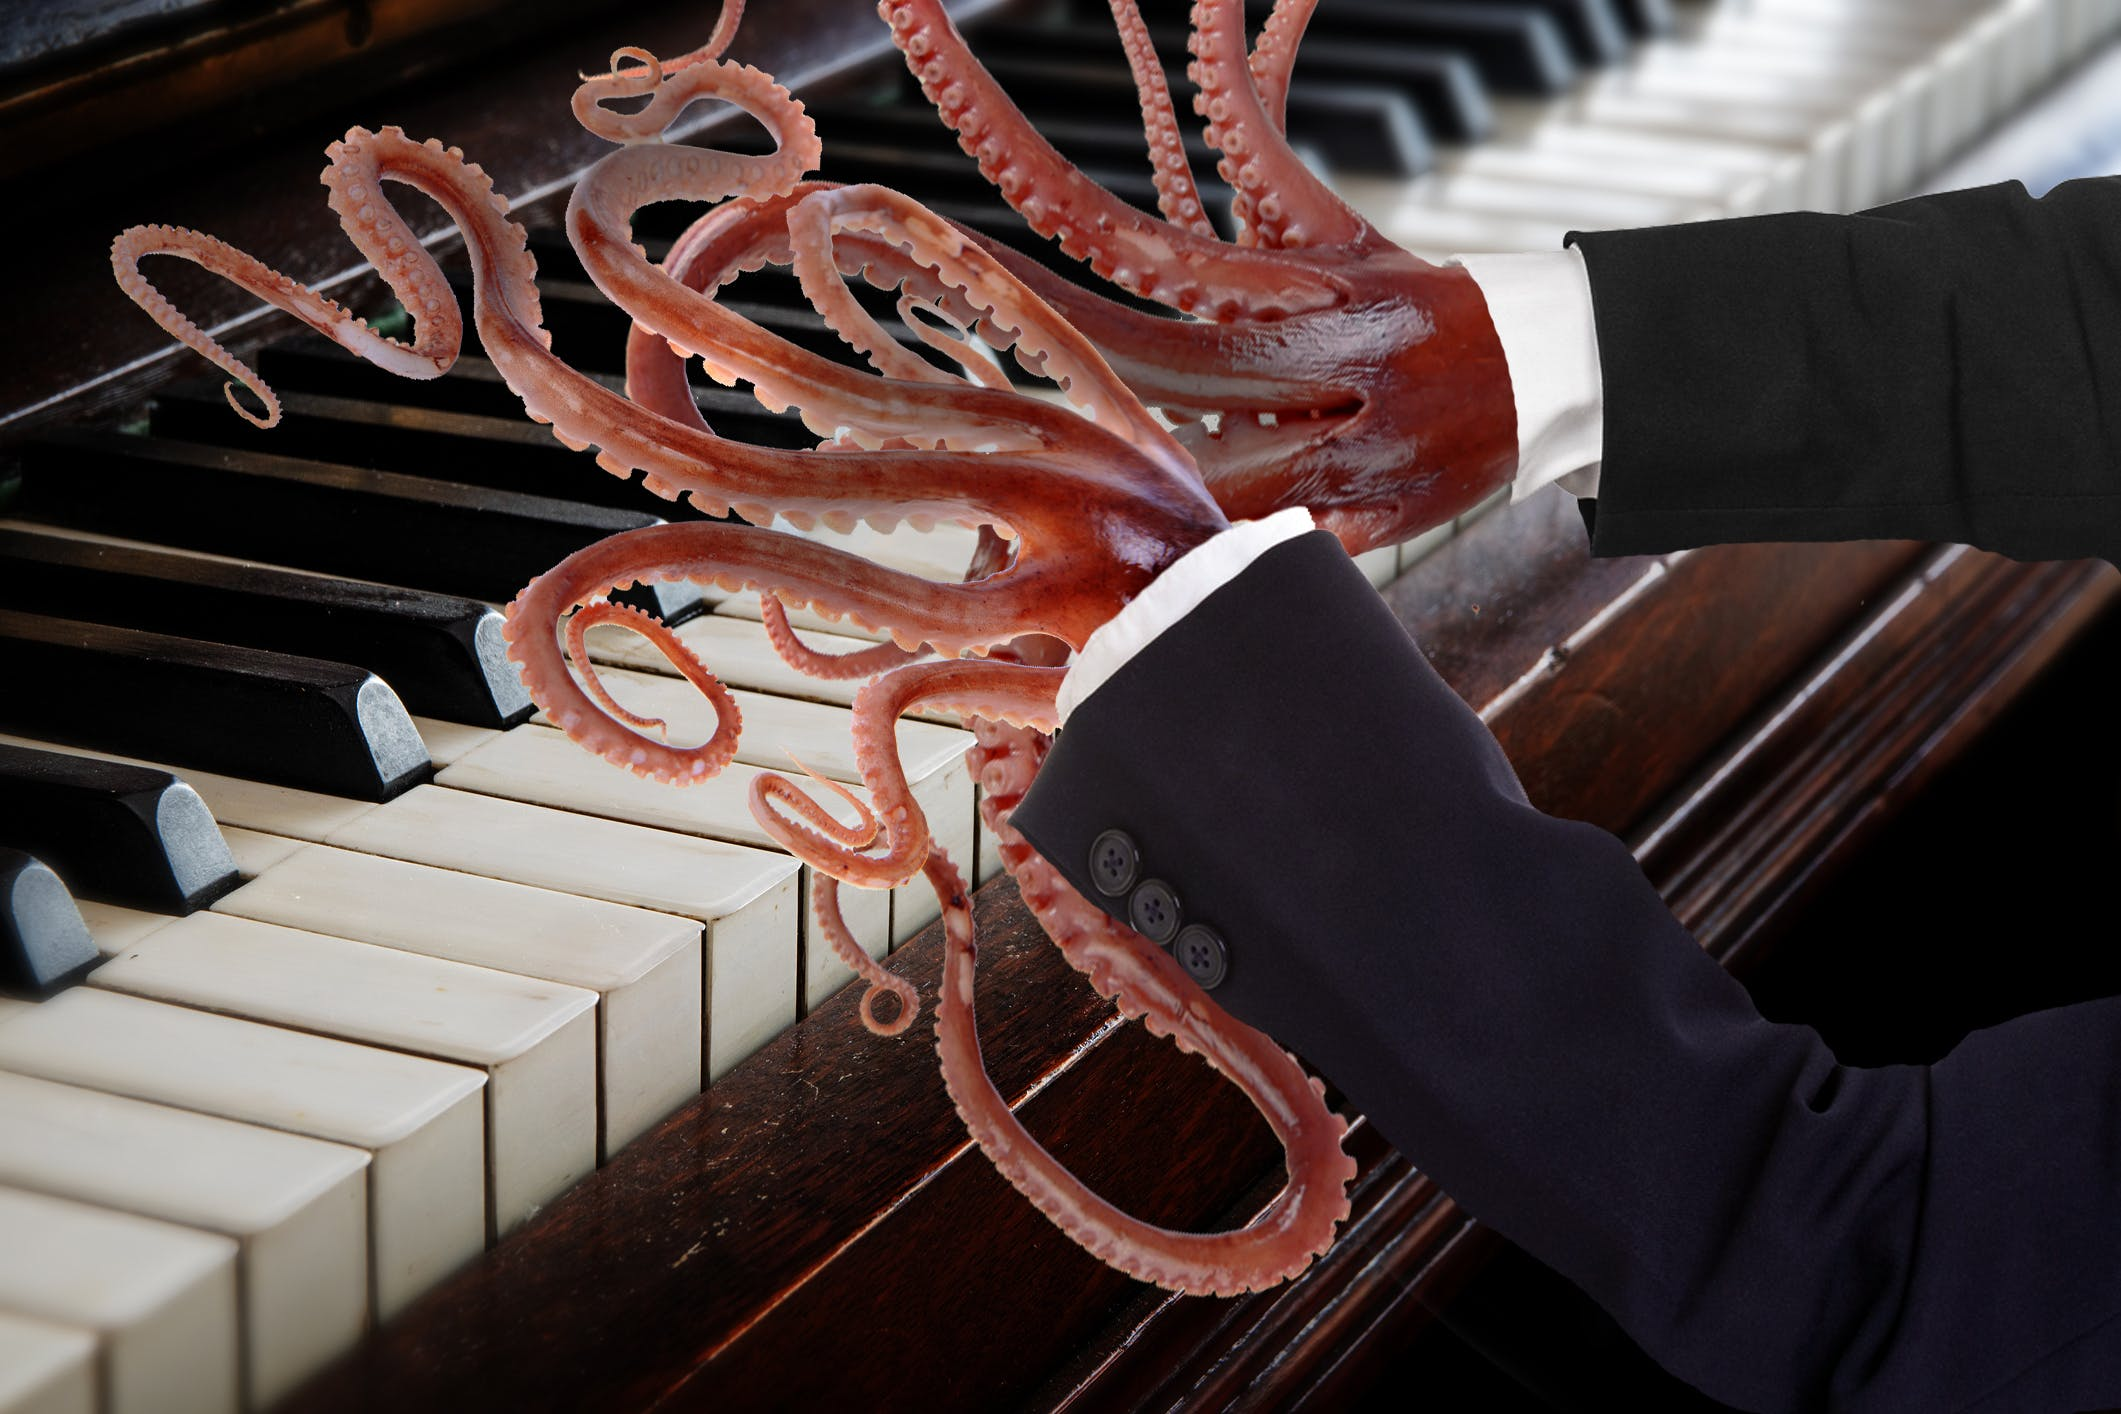 Octopus piano fingers